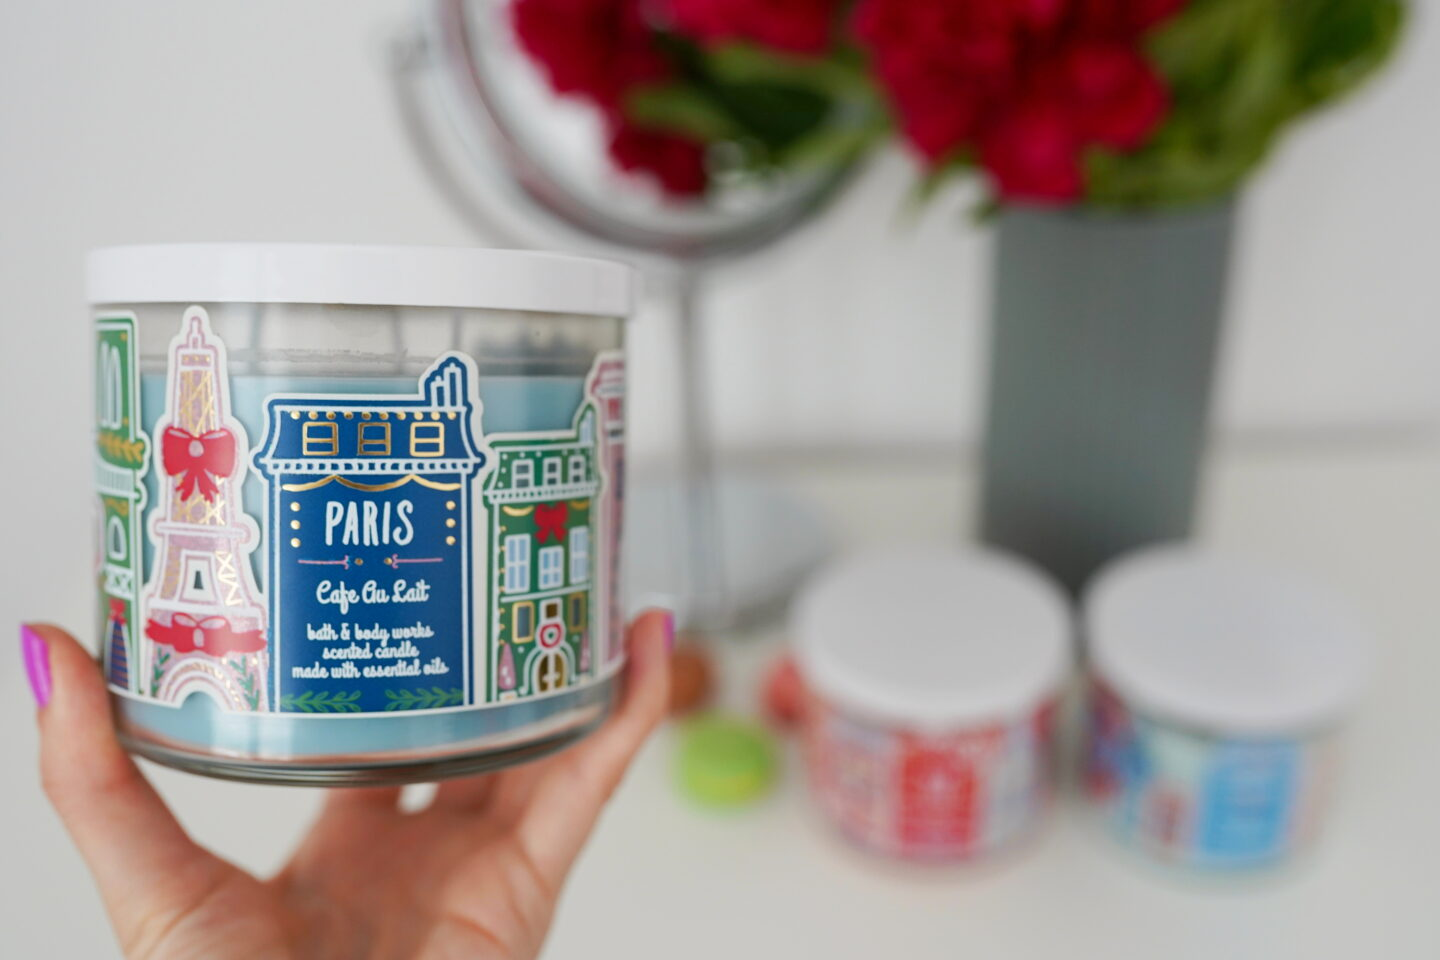 Sviečka Bath and Body works s vôňu Cafe au Lait PARIS